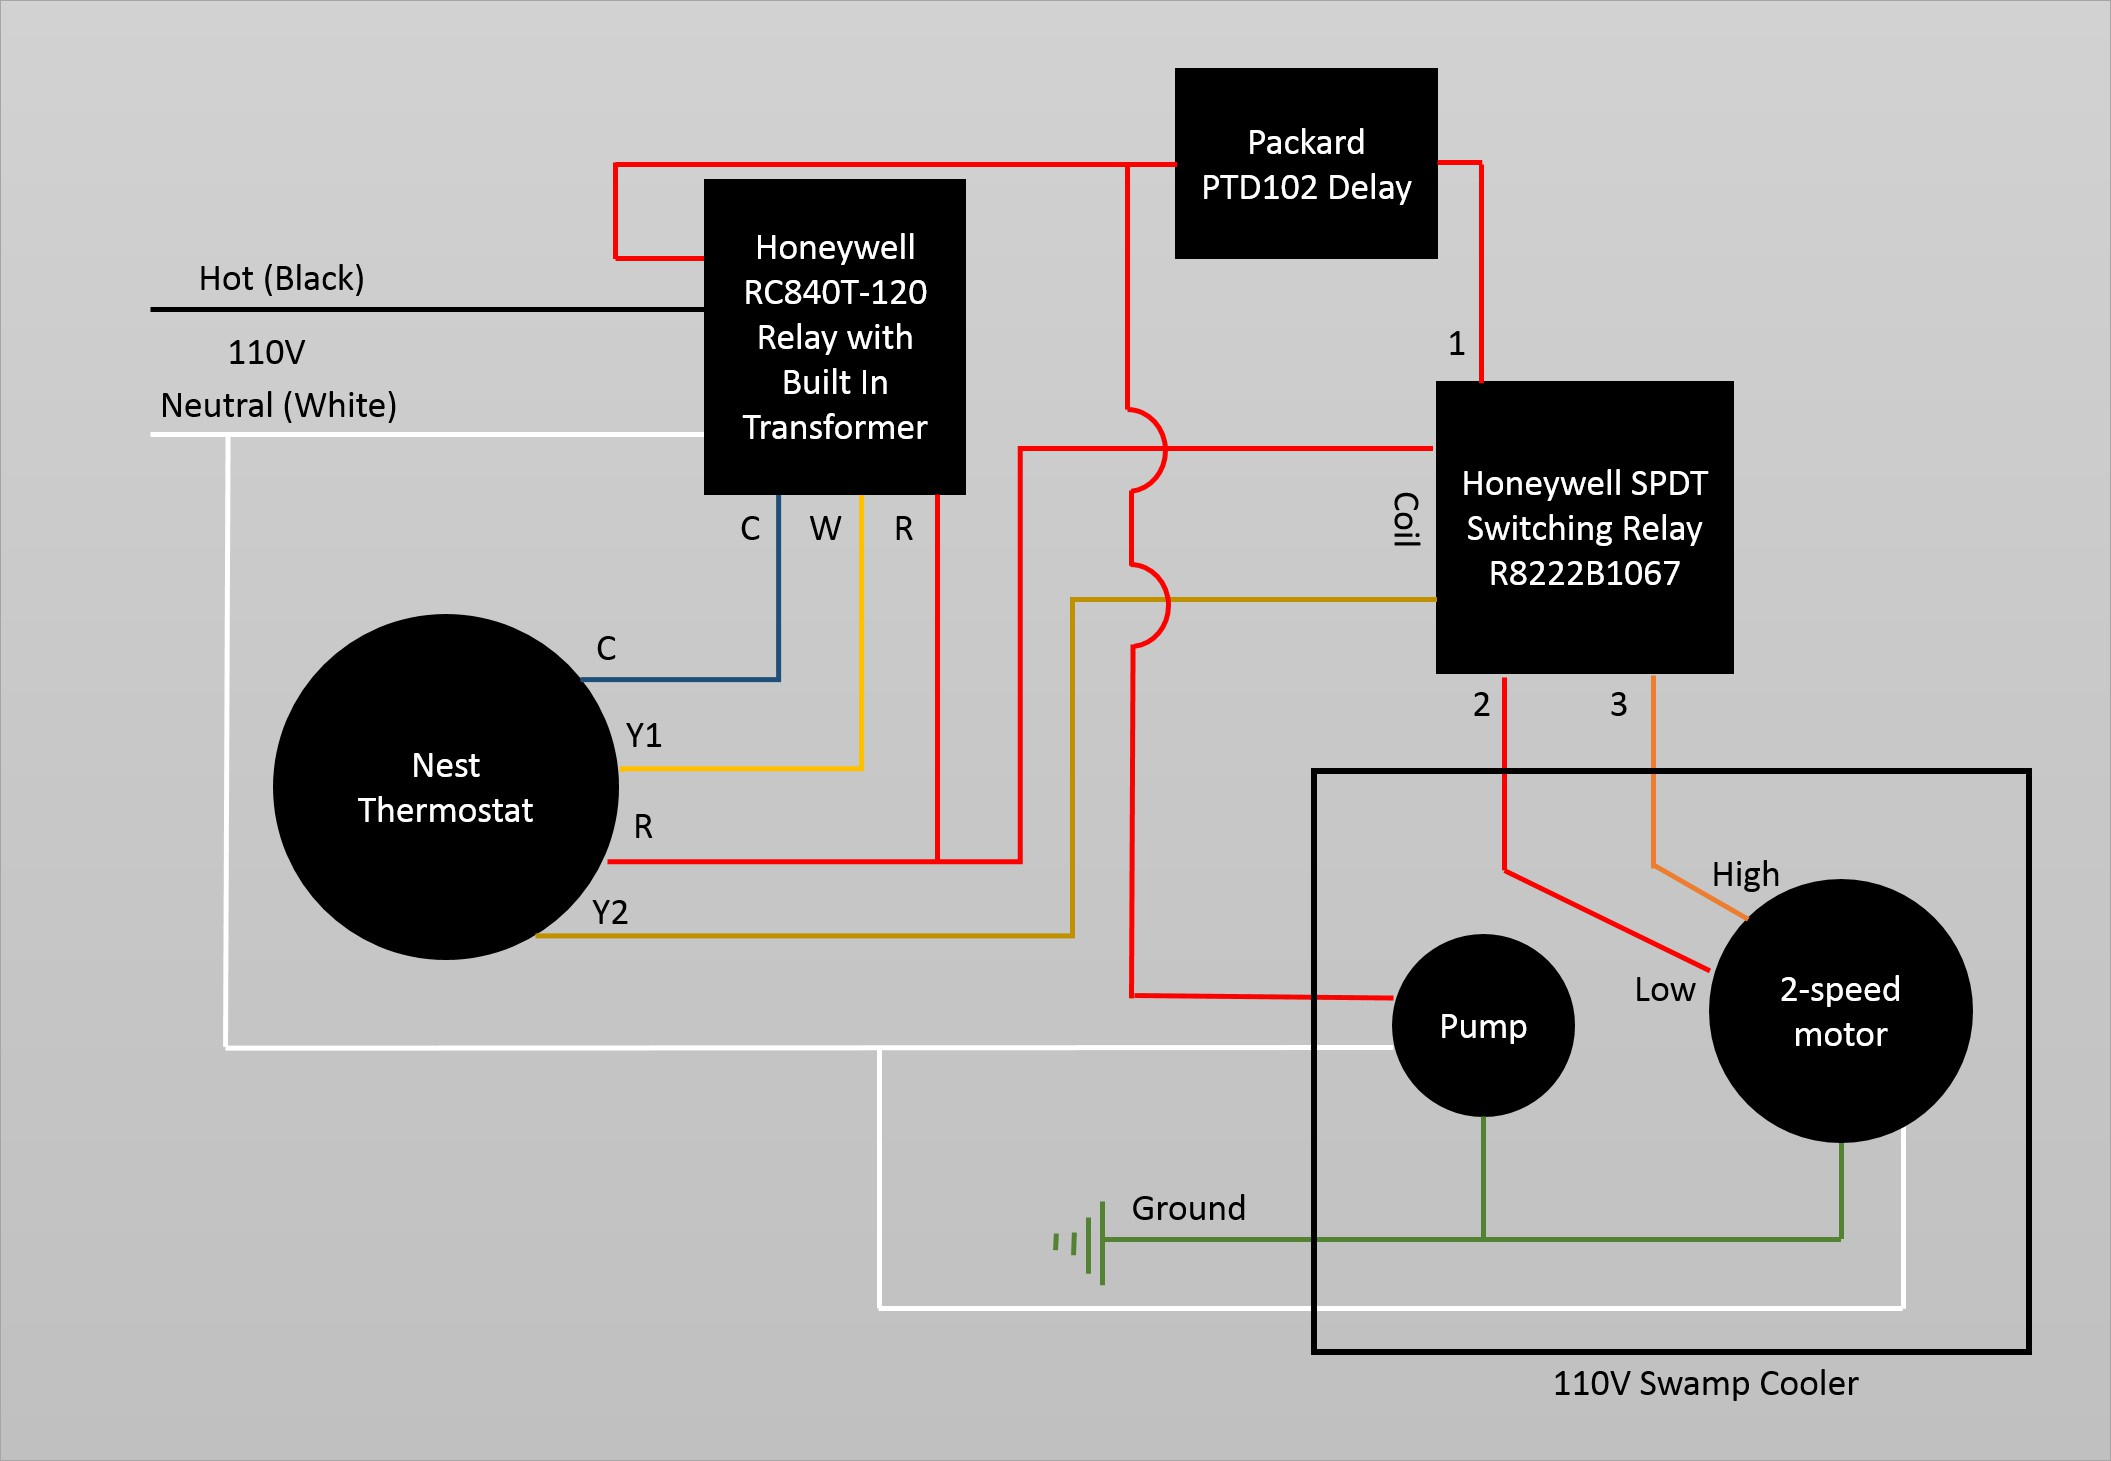 Honeywell Lyric Wiring Diagram Lovely Controlling Humidifier Swamp - Wiring Diagram For Nest Thermostat With Humidifier